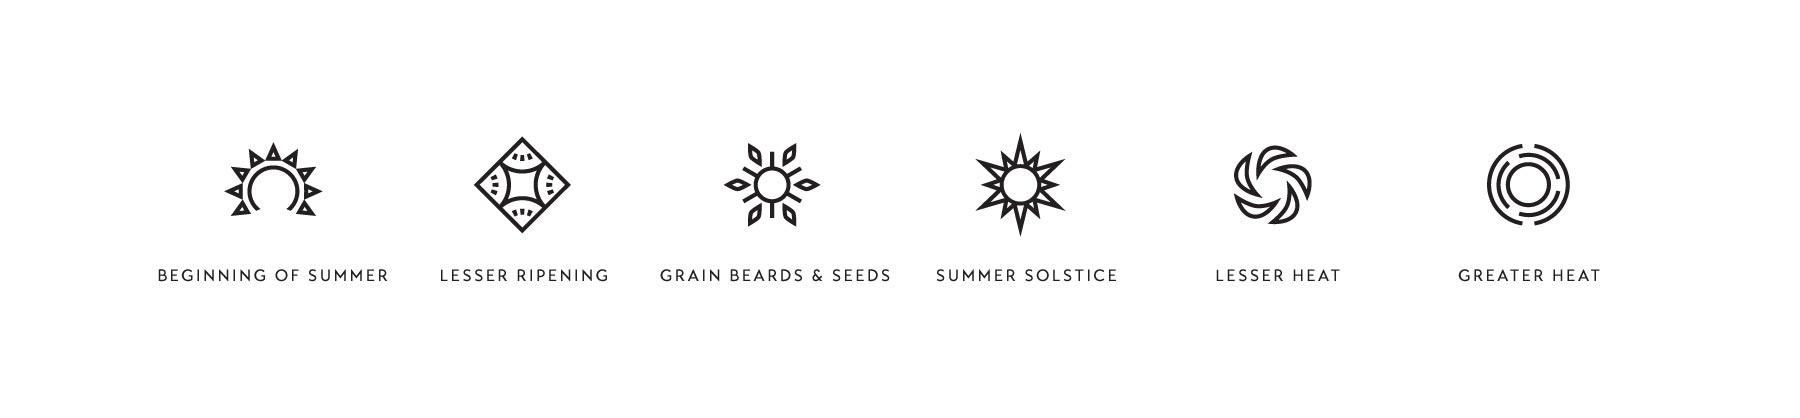 Icon designs for the summer seasons, created by Lisa Furze